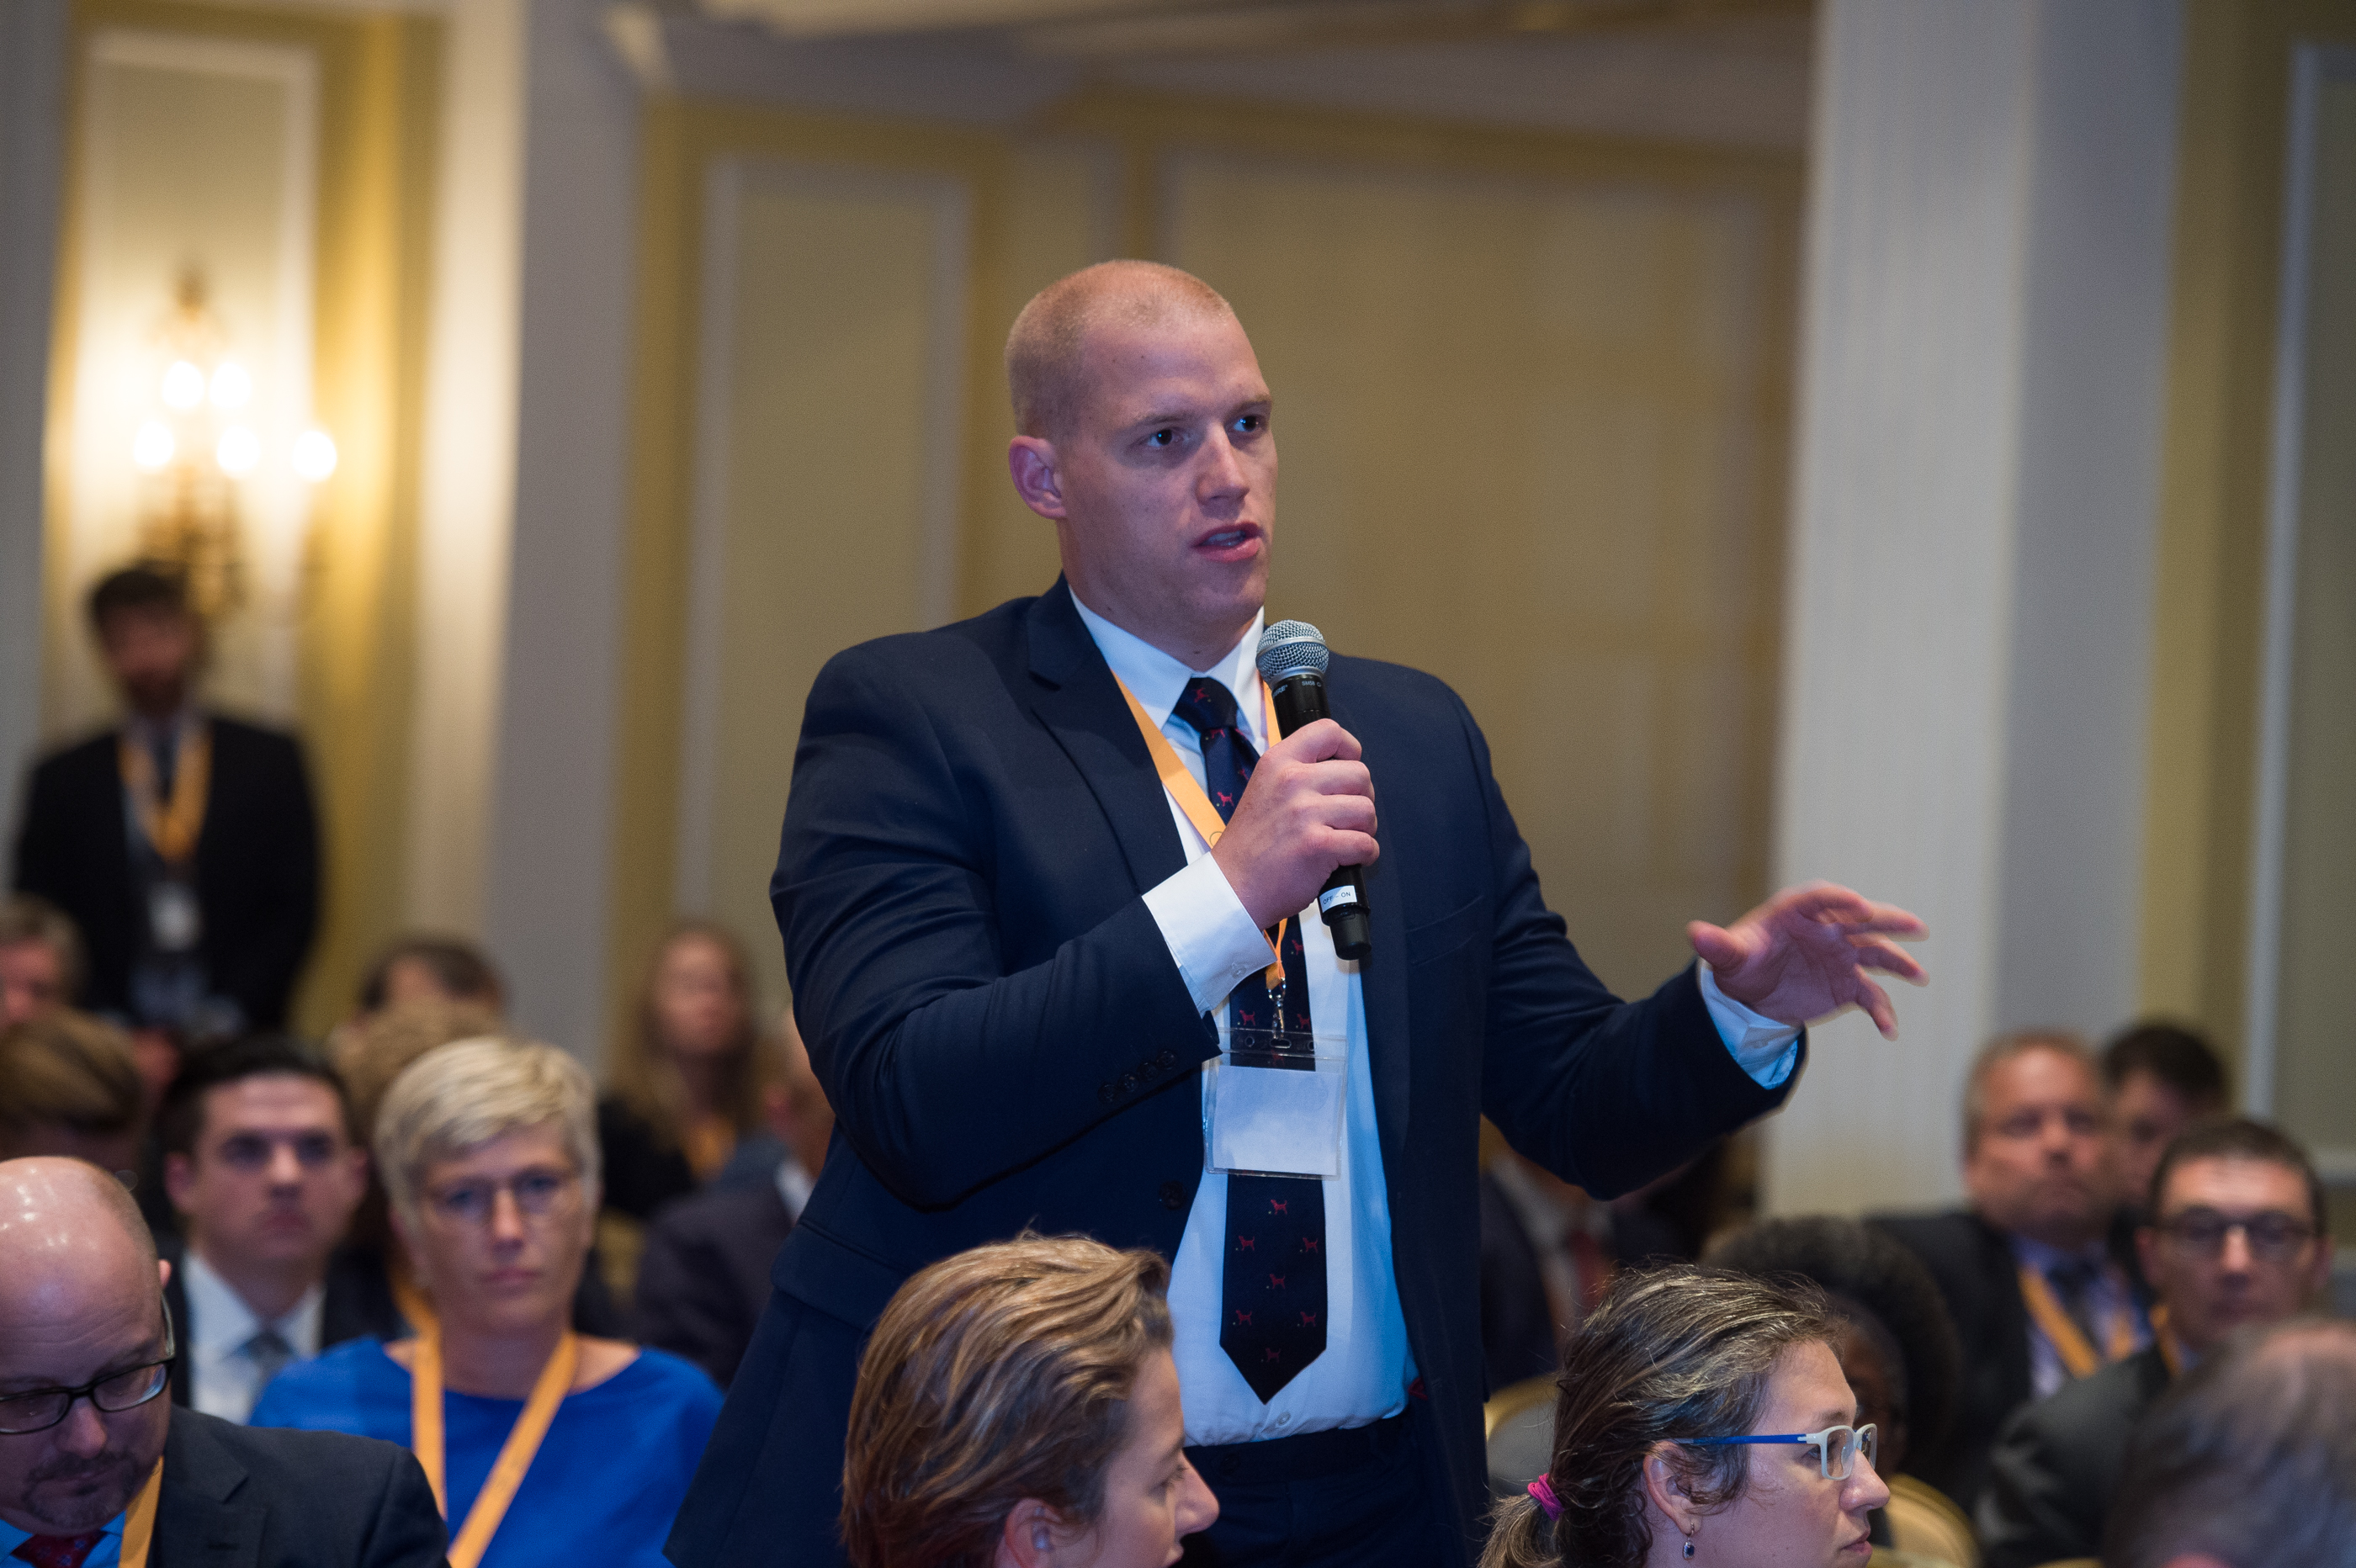 Dusan Fischer comments at the CEPA Forum (Photo courtesy of CEPA)